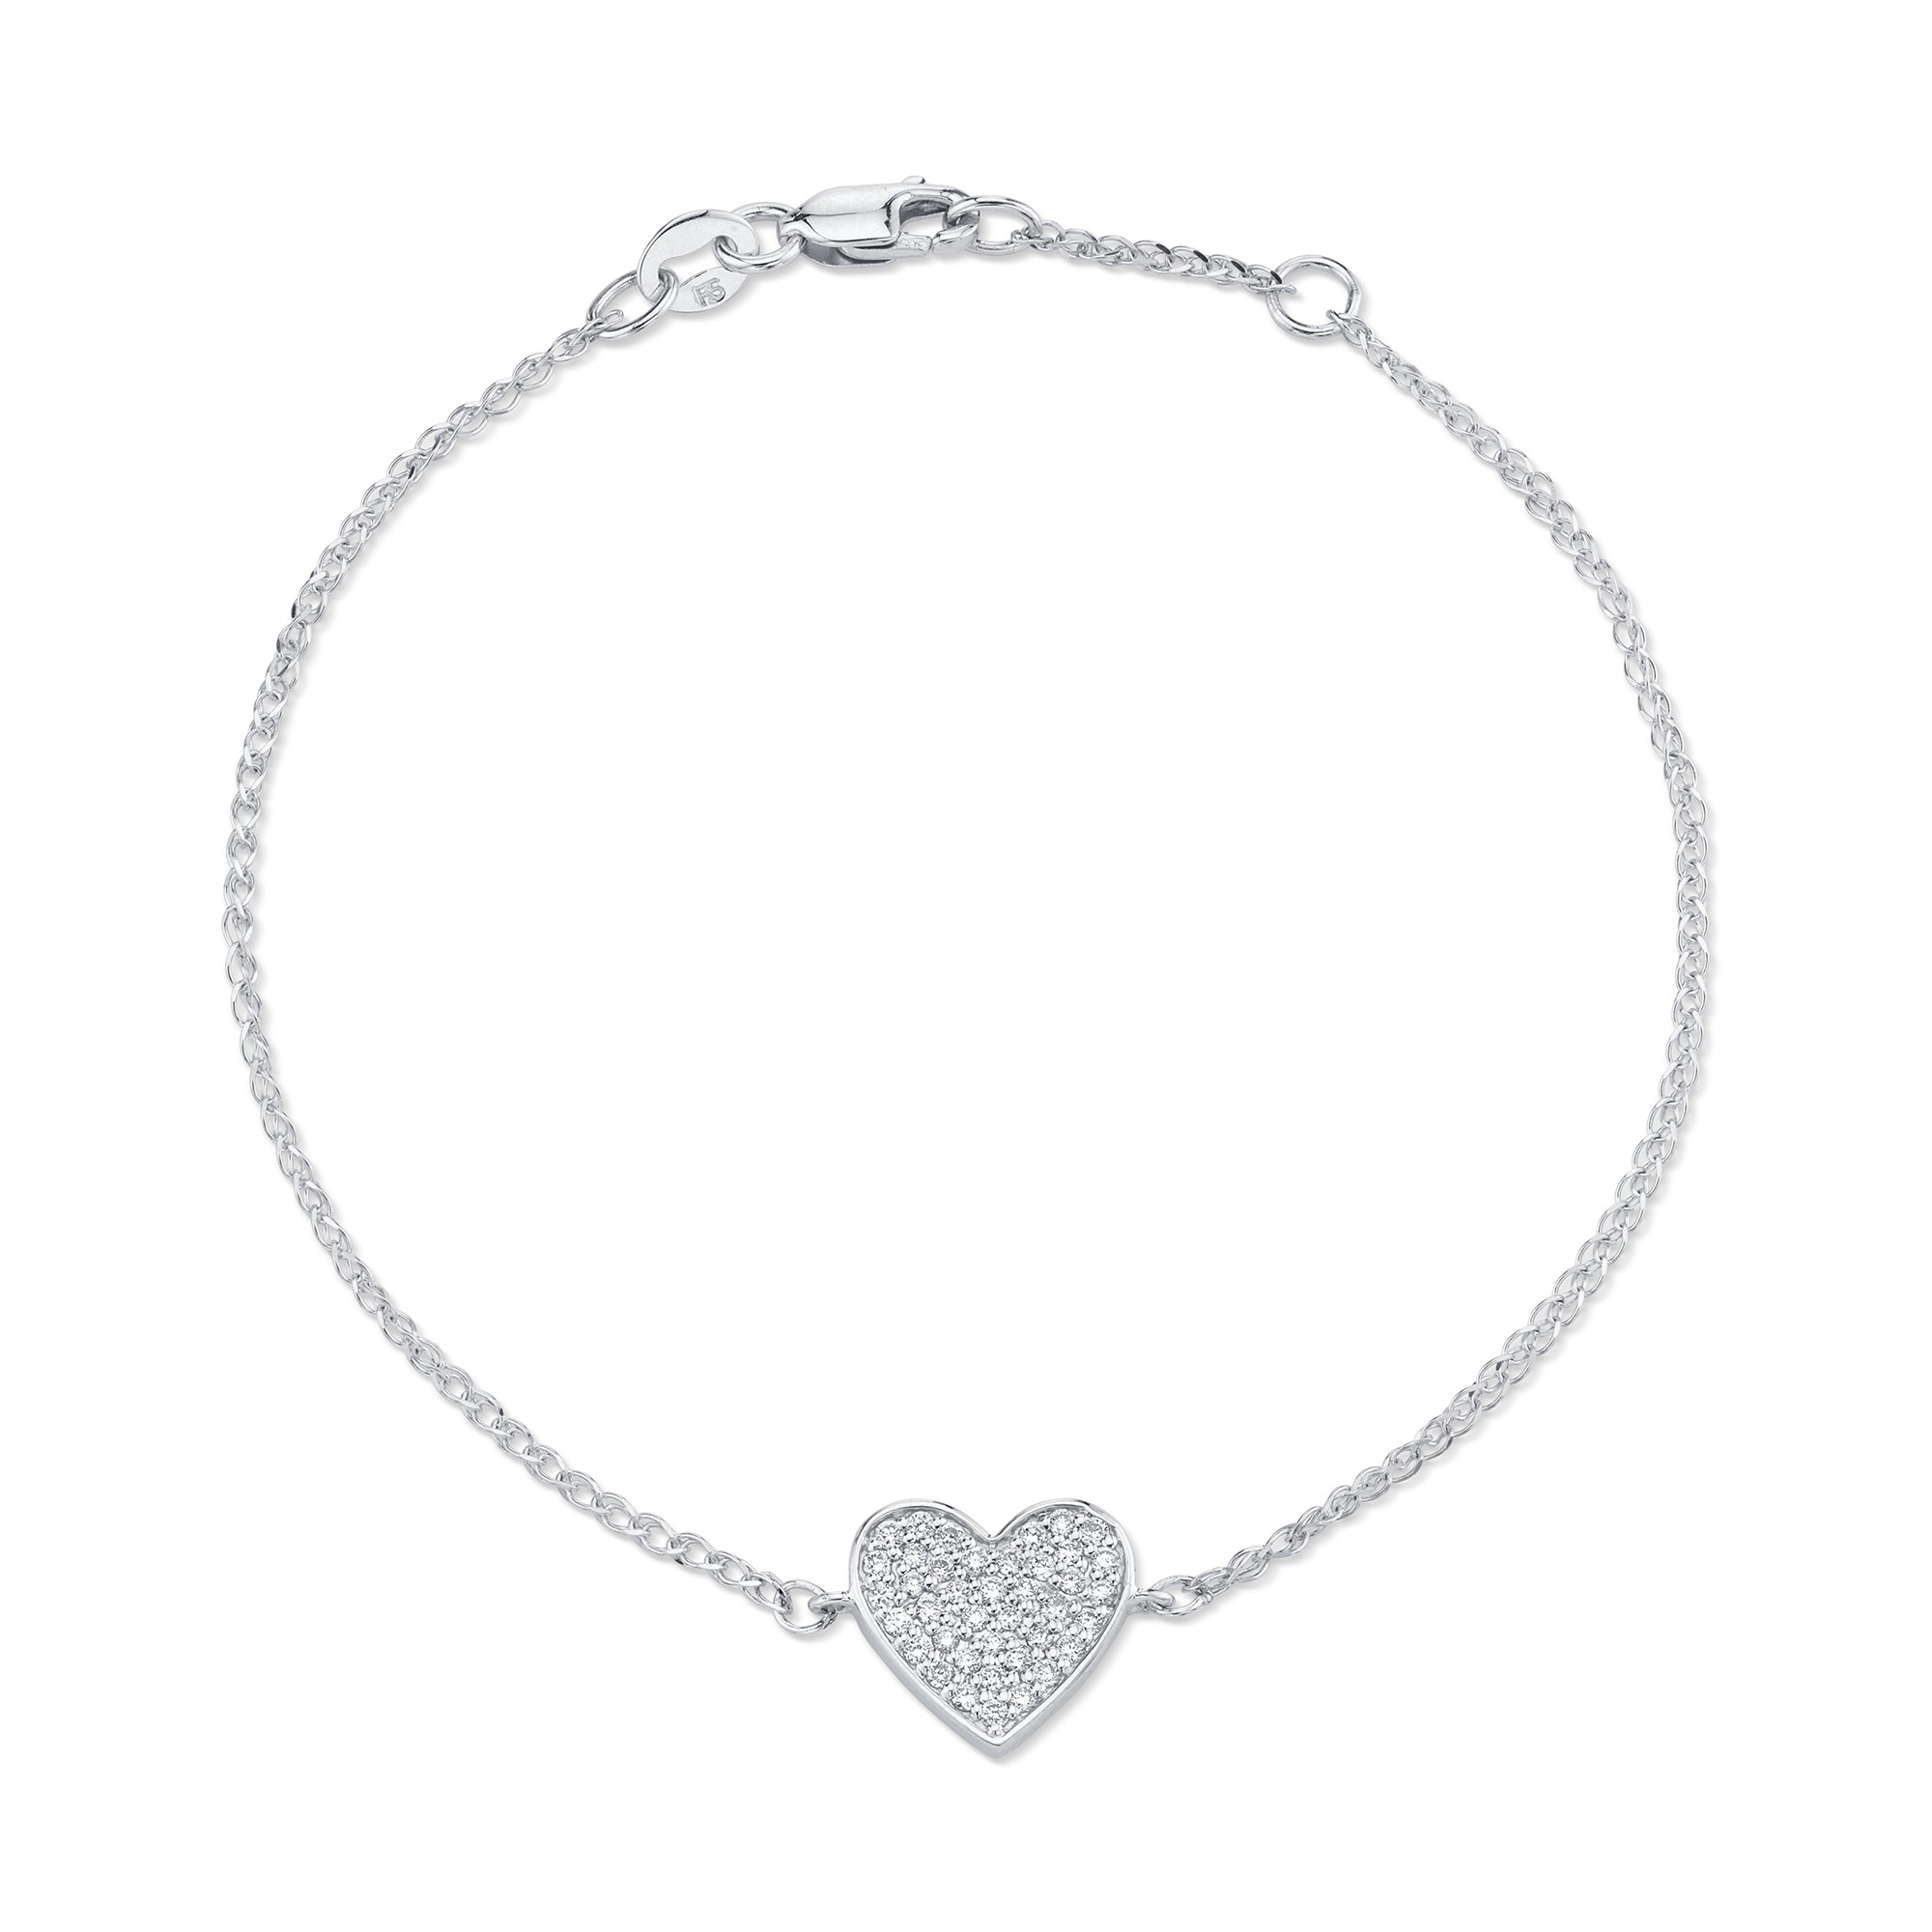 14k White Gold Diamond Floating Heart Bracelet